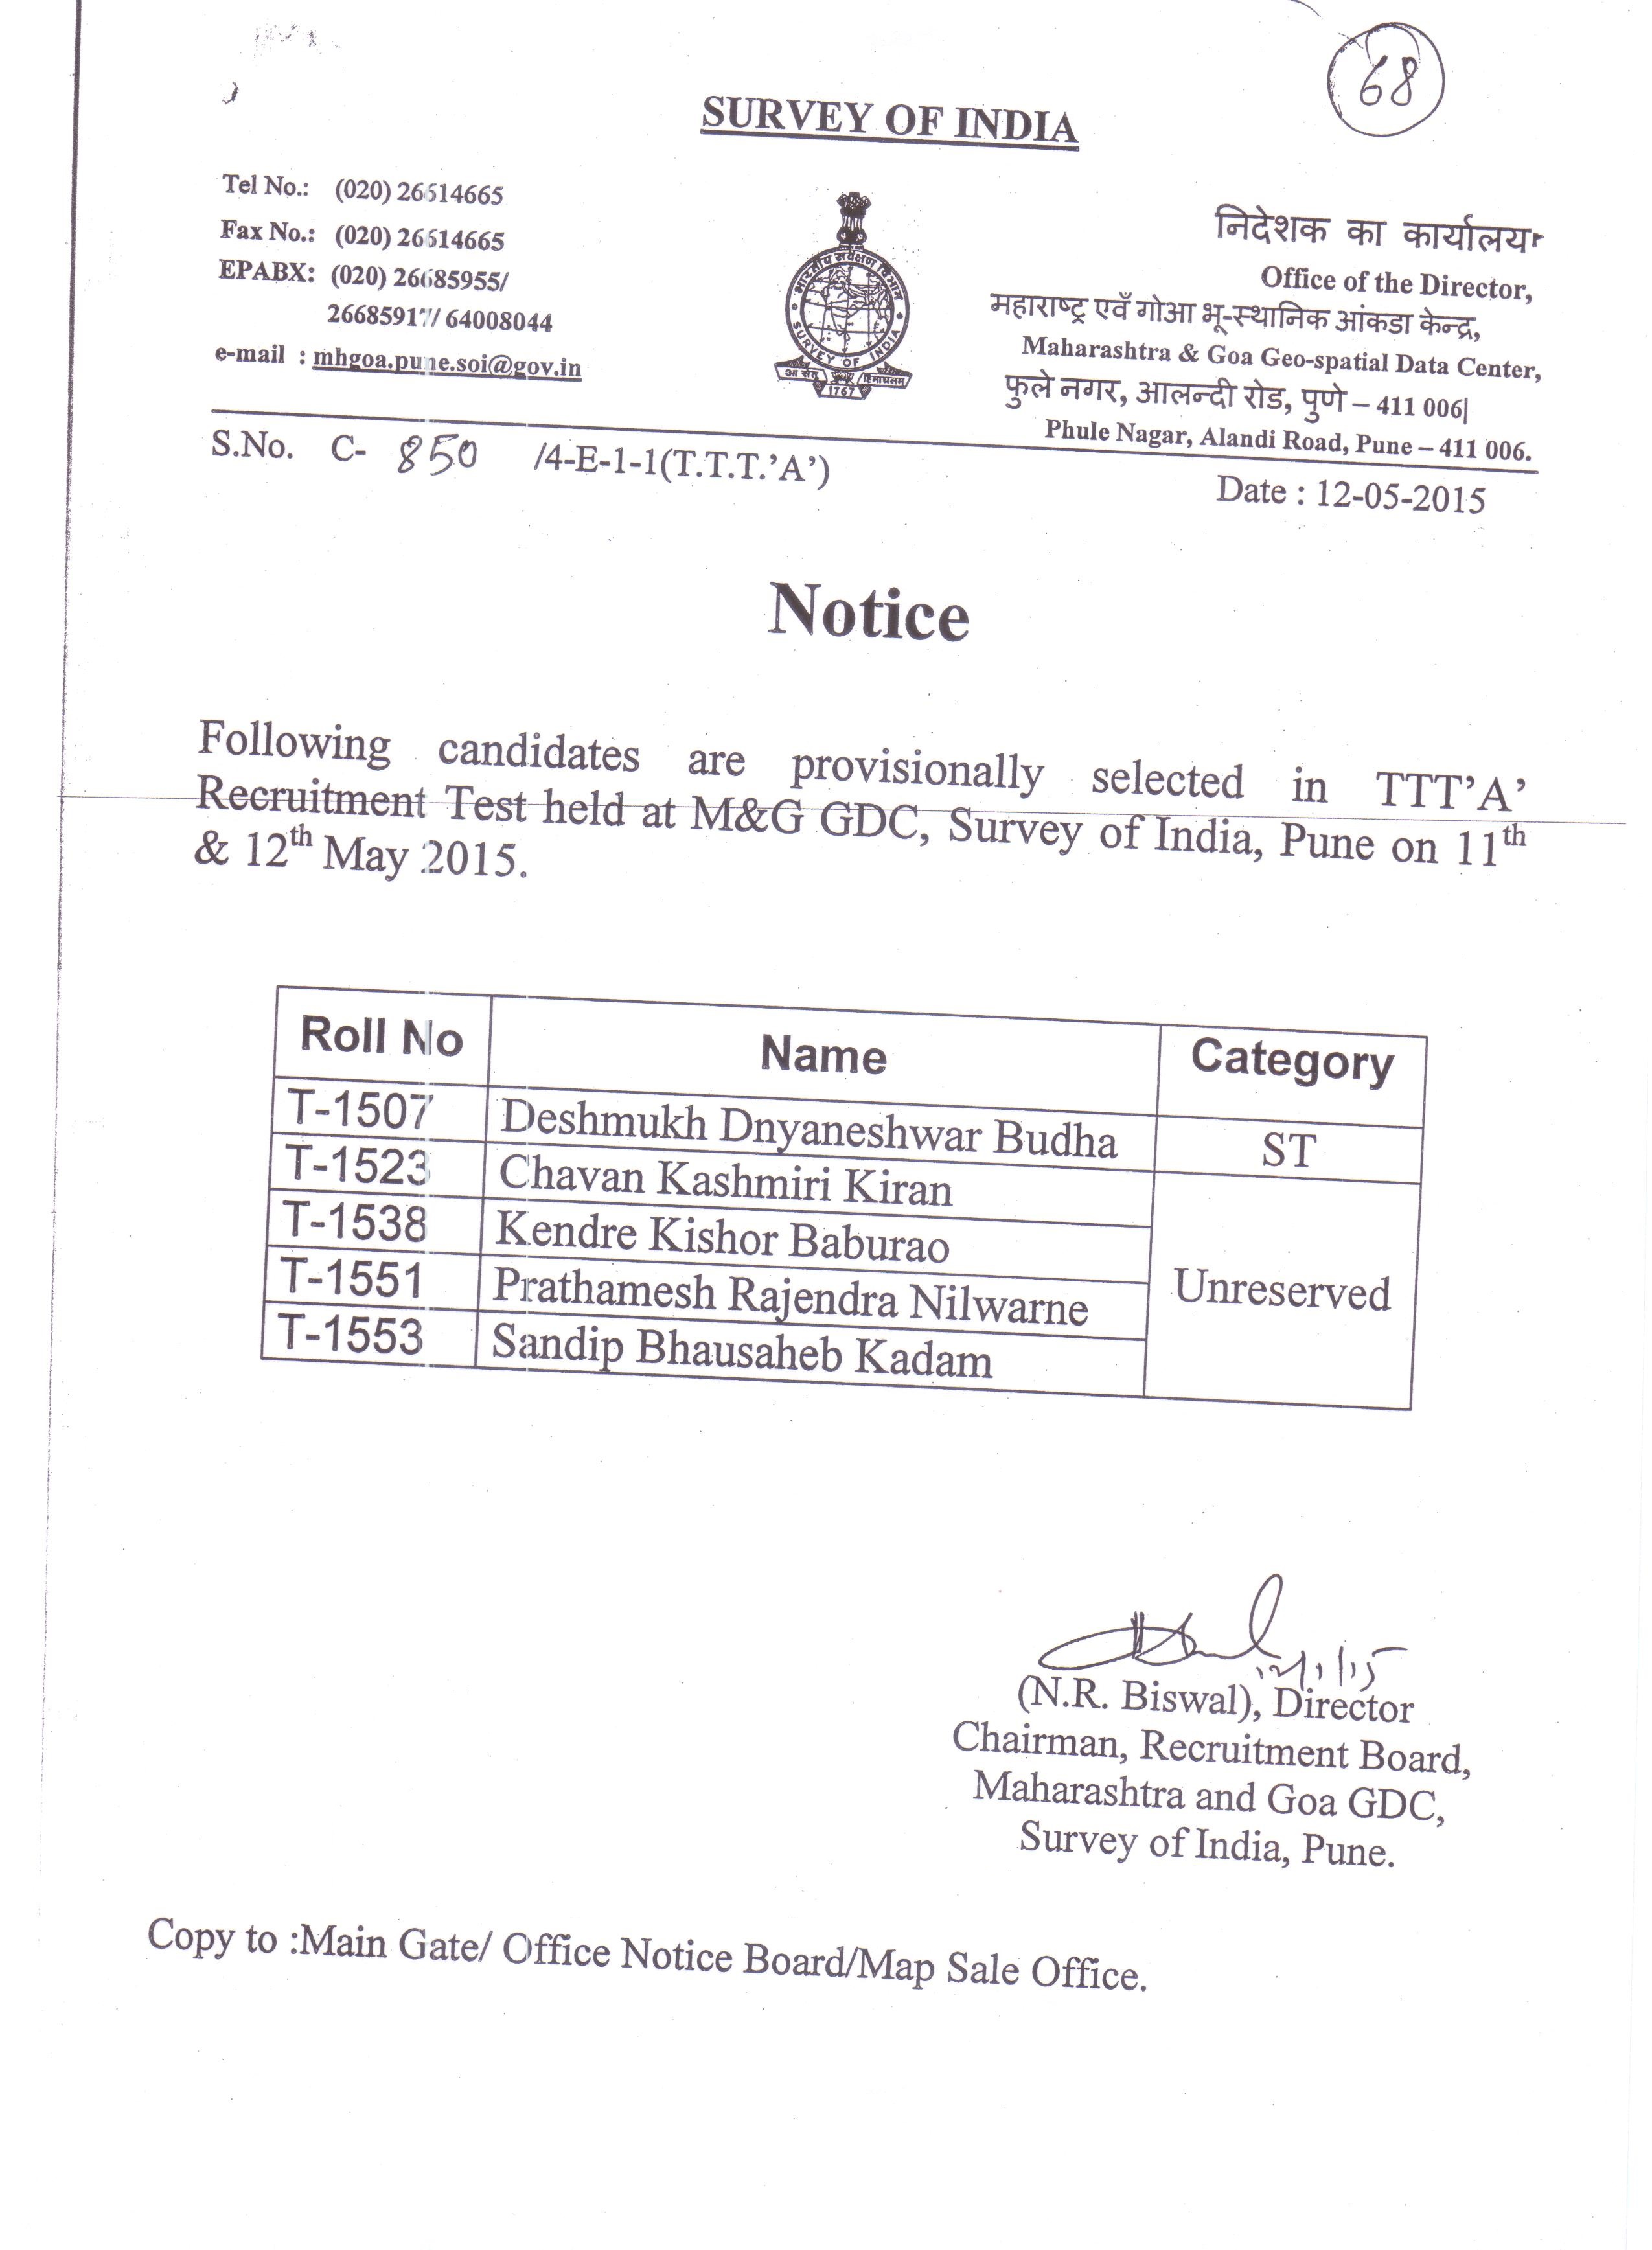 List of GDCs/Offices/ Directorate: Survey of India